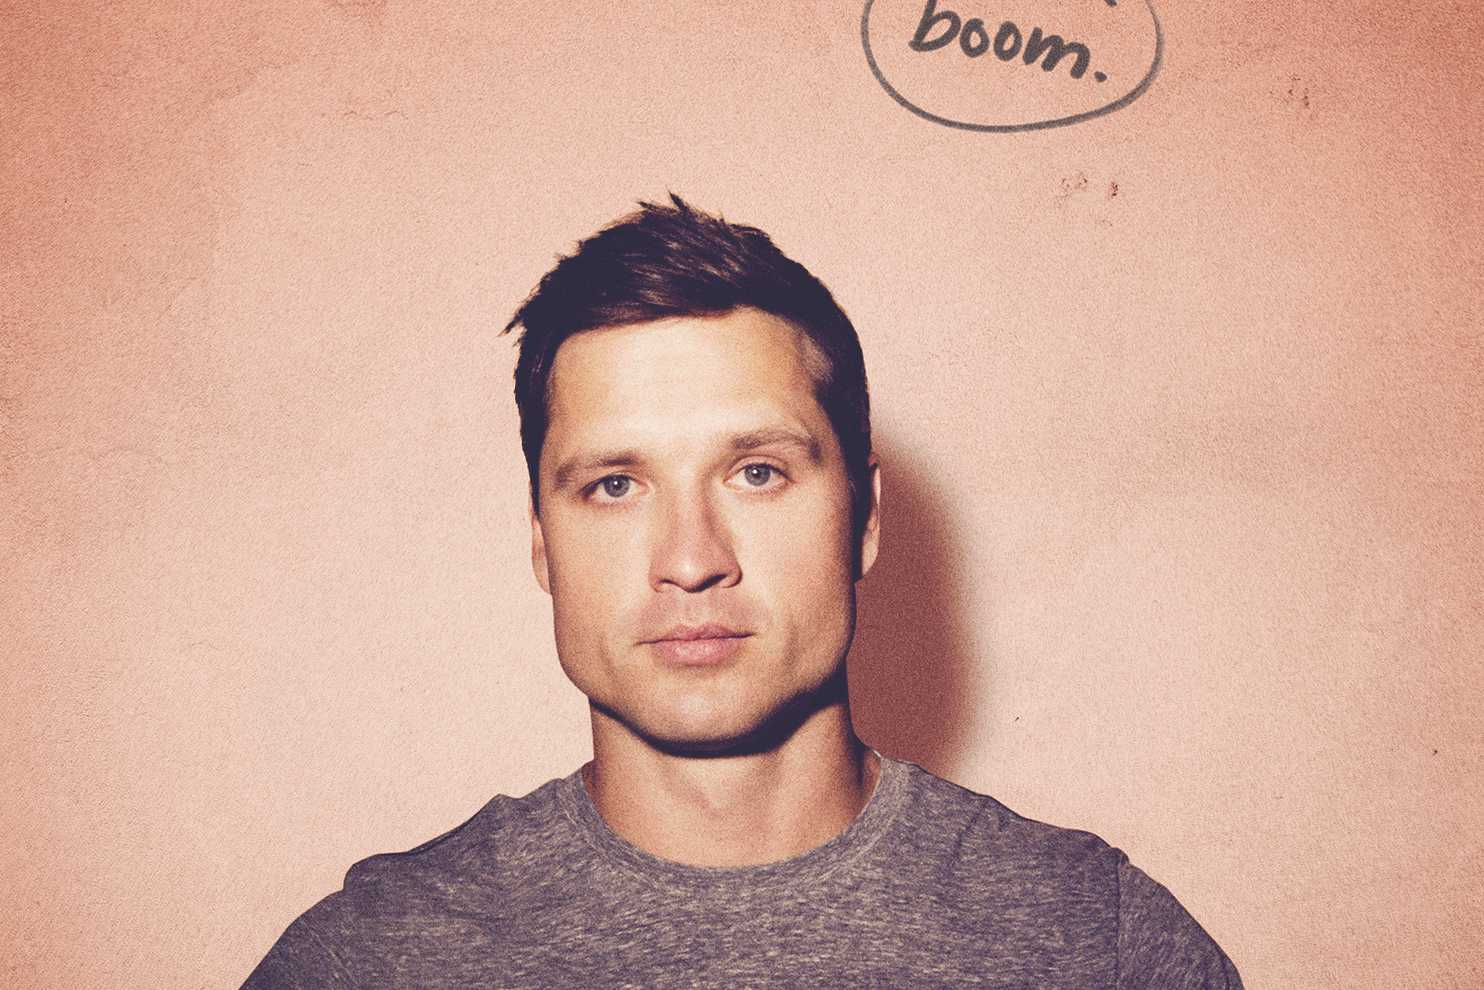 "SONY MUSIC Walker Hayes' debut album ""boom."" comes out Dec. 8. The album includes his current single, ""You Broke Up With Me."" Hayes will open the Thomas Rhett concert with Old Dominion Dec. 1 at the Swiftel Center."